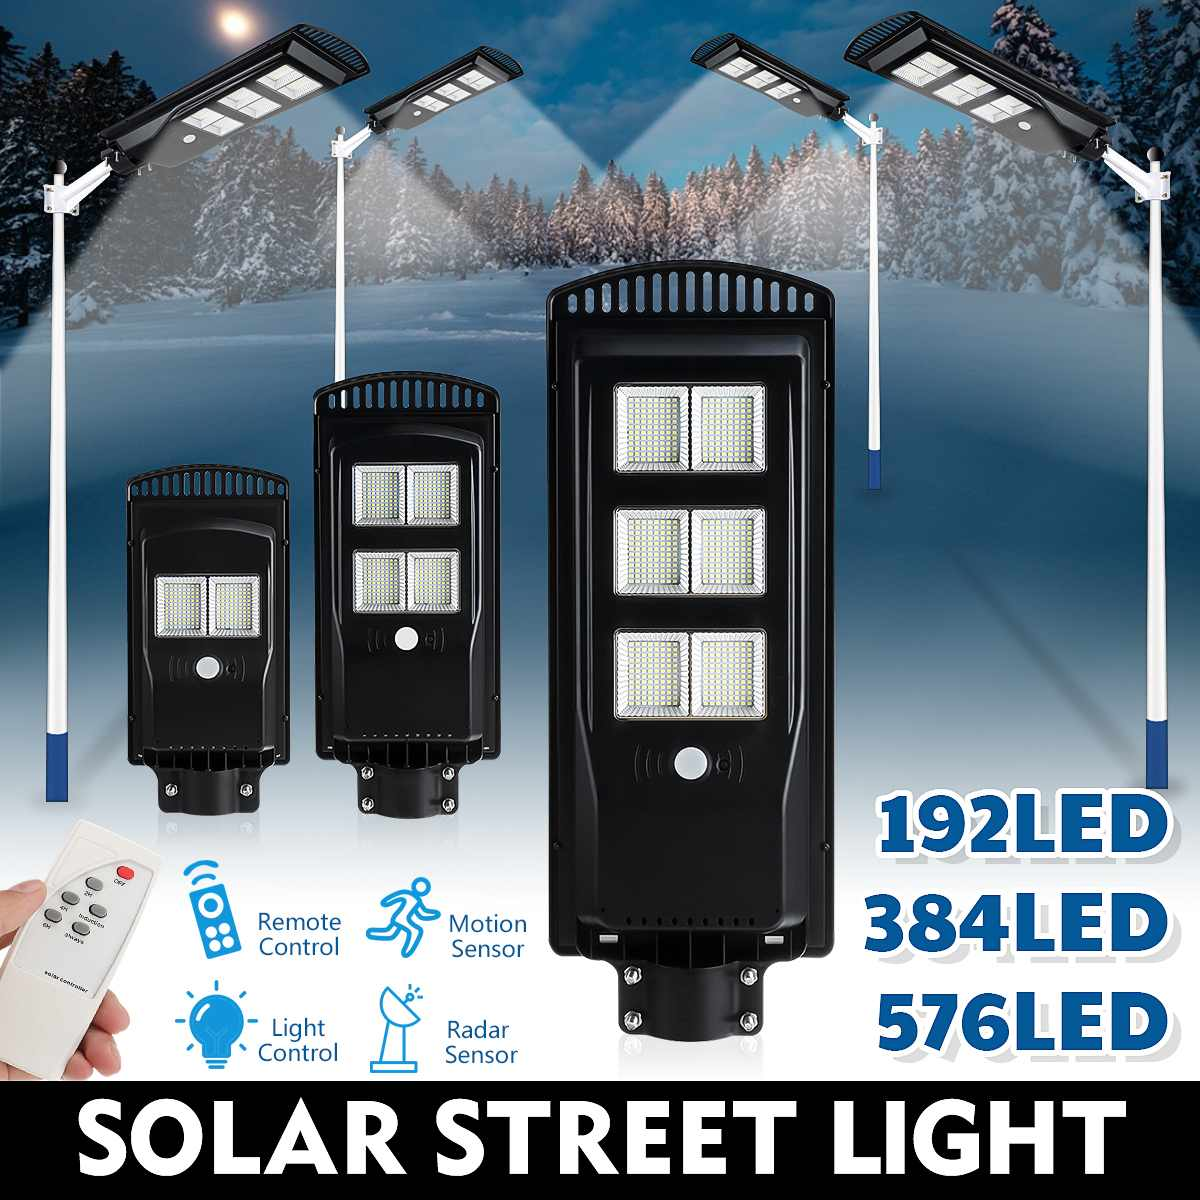 200W 300W 450W LED Solar Street Light with Remote Control PIR Motion Sensor Outdoor Garden Industrial Security Wall Lamp